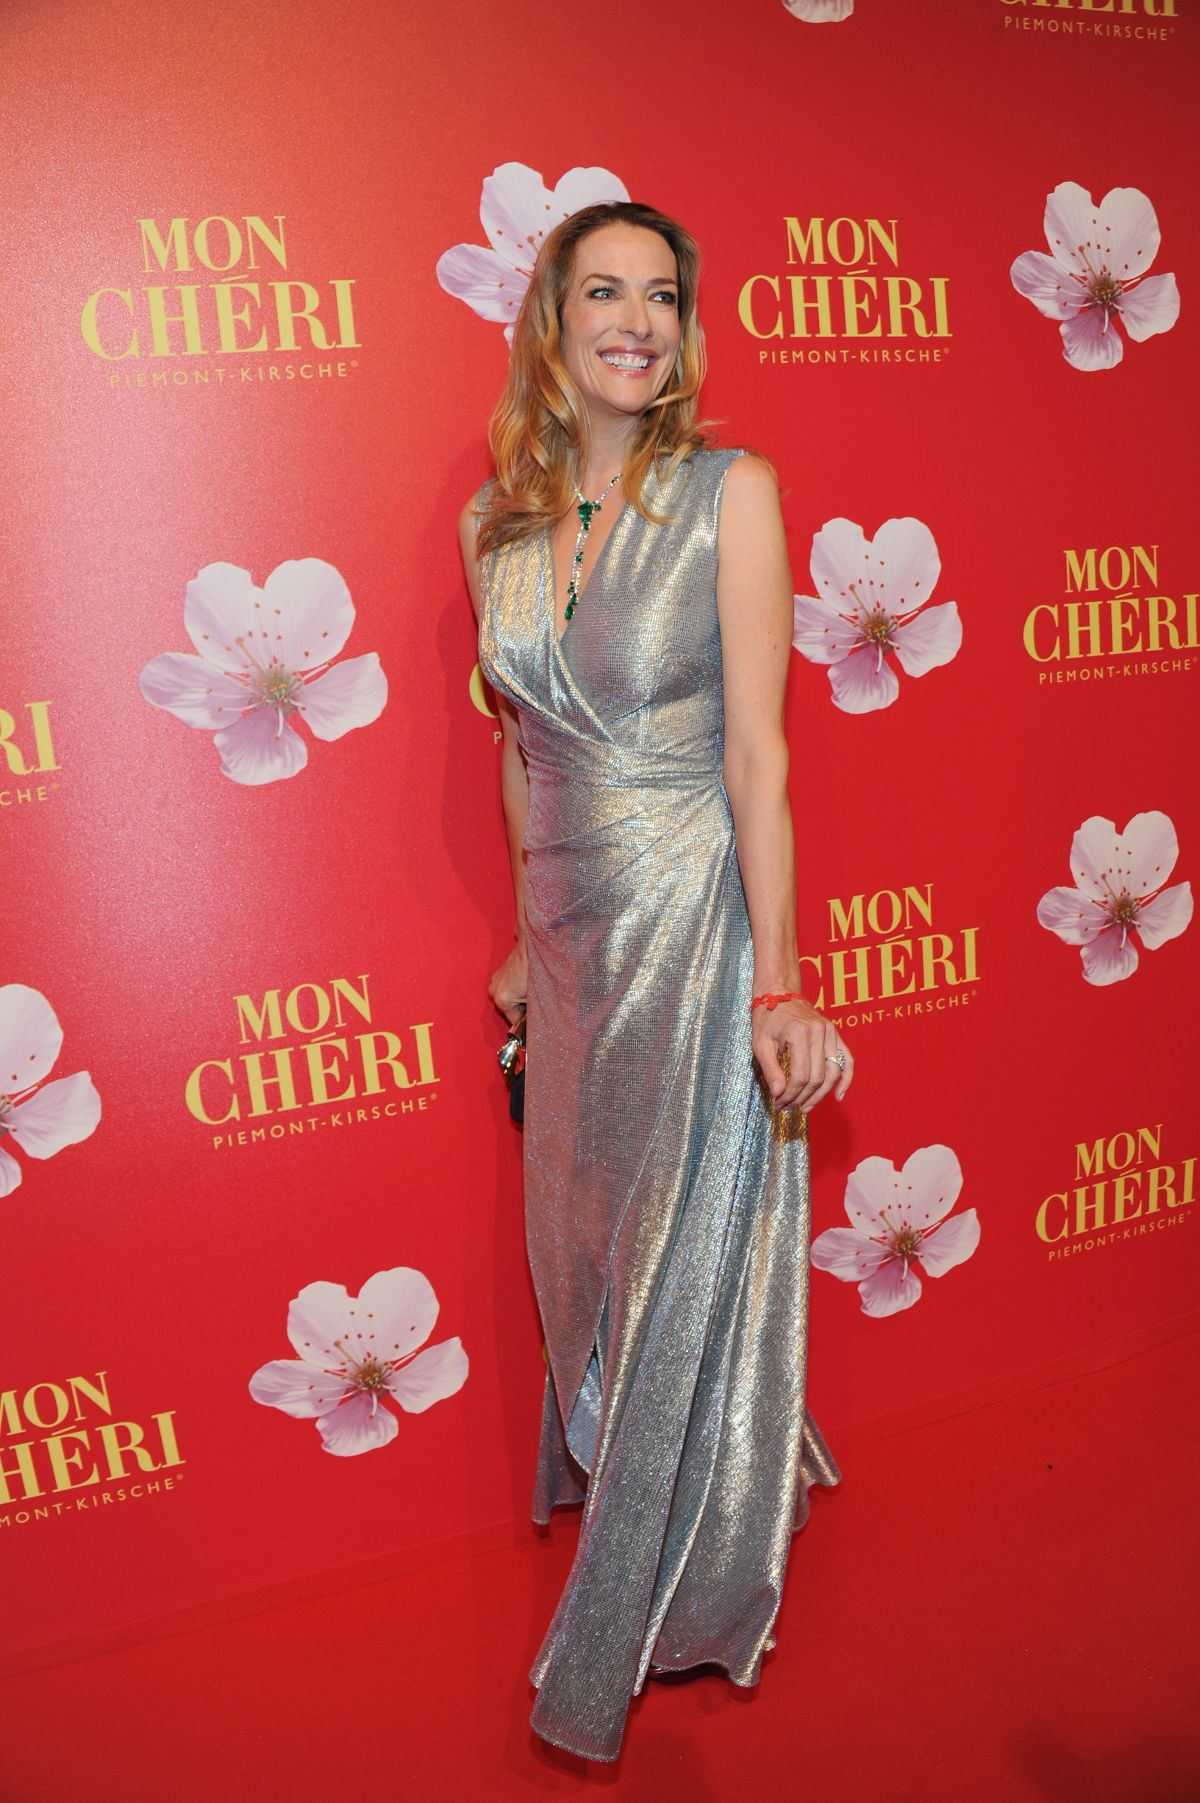 TATJANA PATITZ at Mon Cherie Barbara Tag 2015 in Munich 12/04/2015